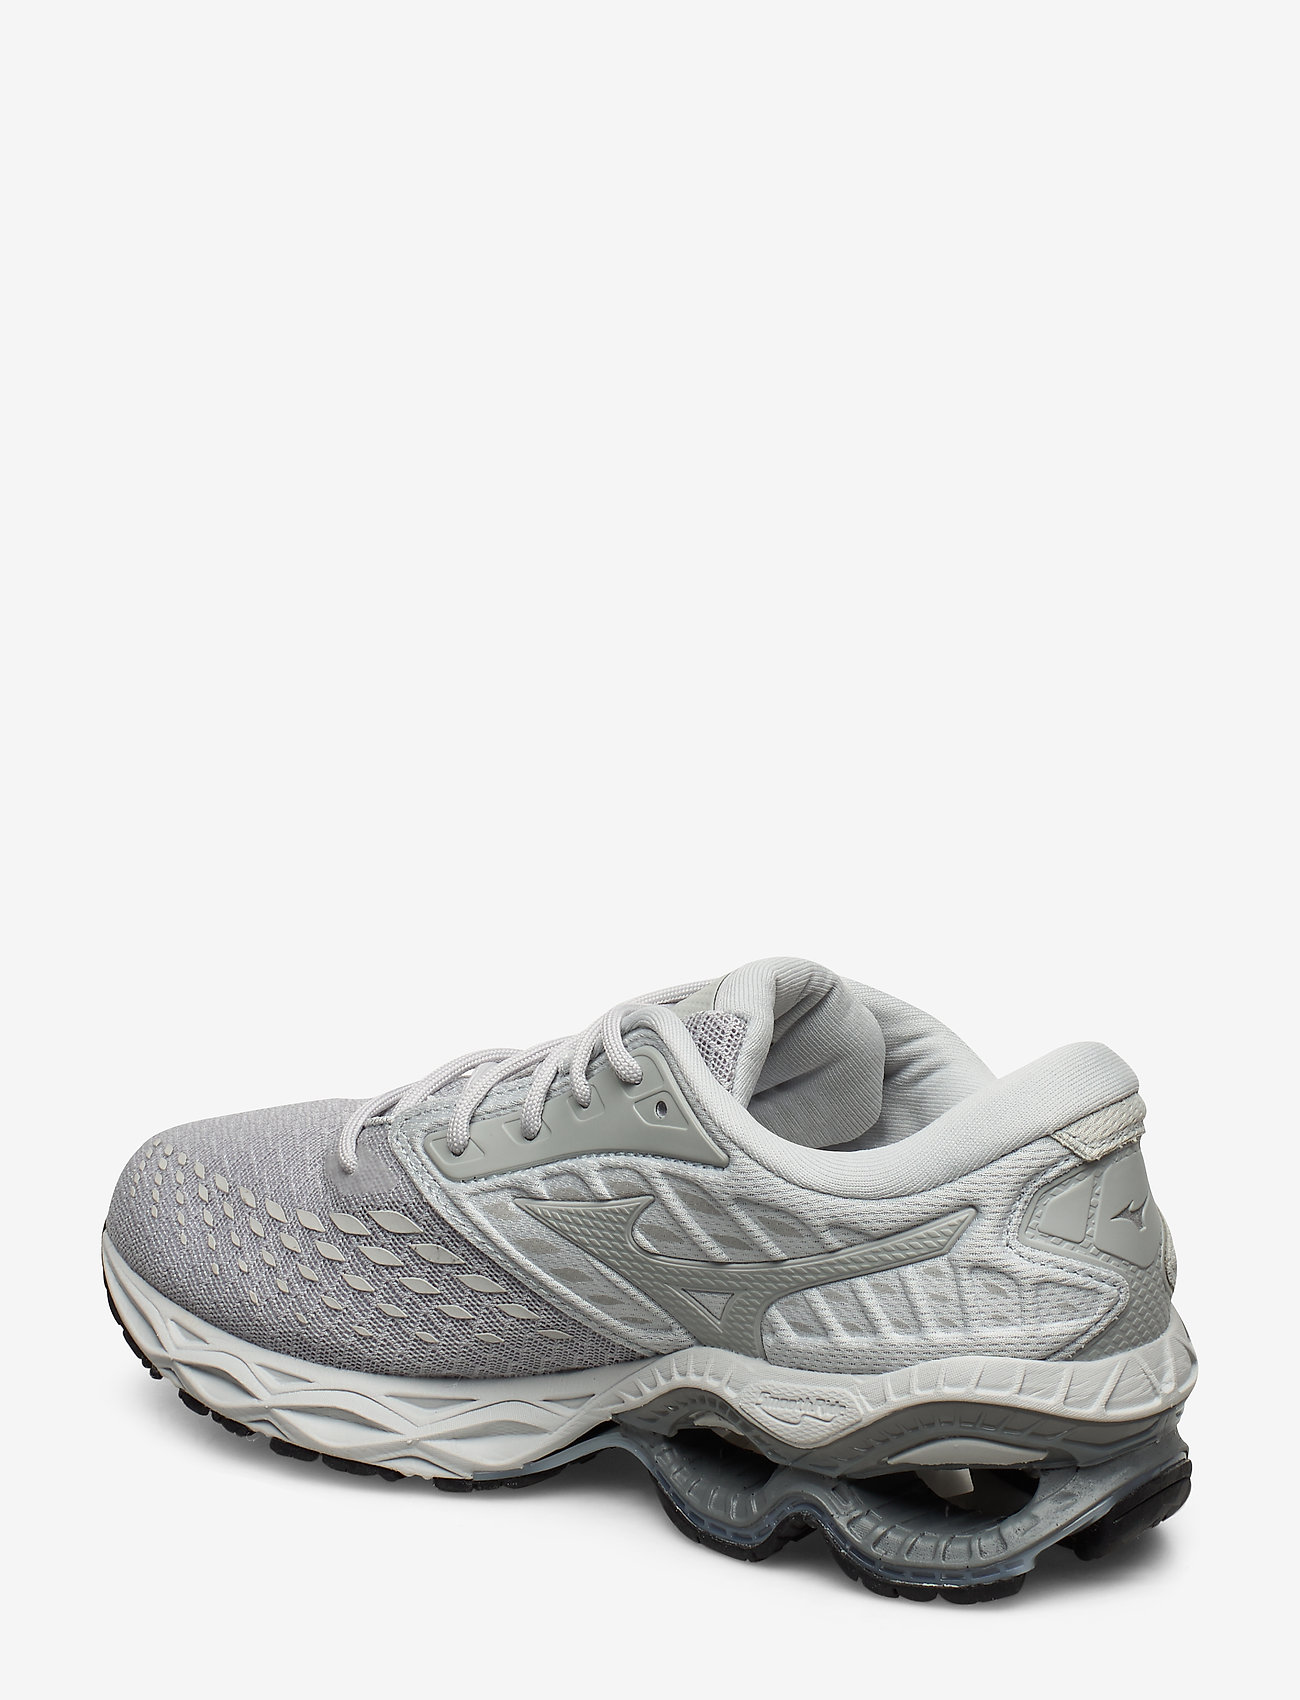 Wave Creation 21 W (Glacier Gray) - Mizuno